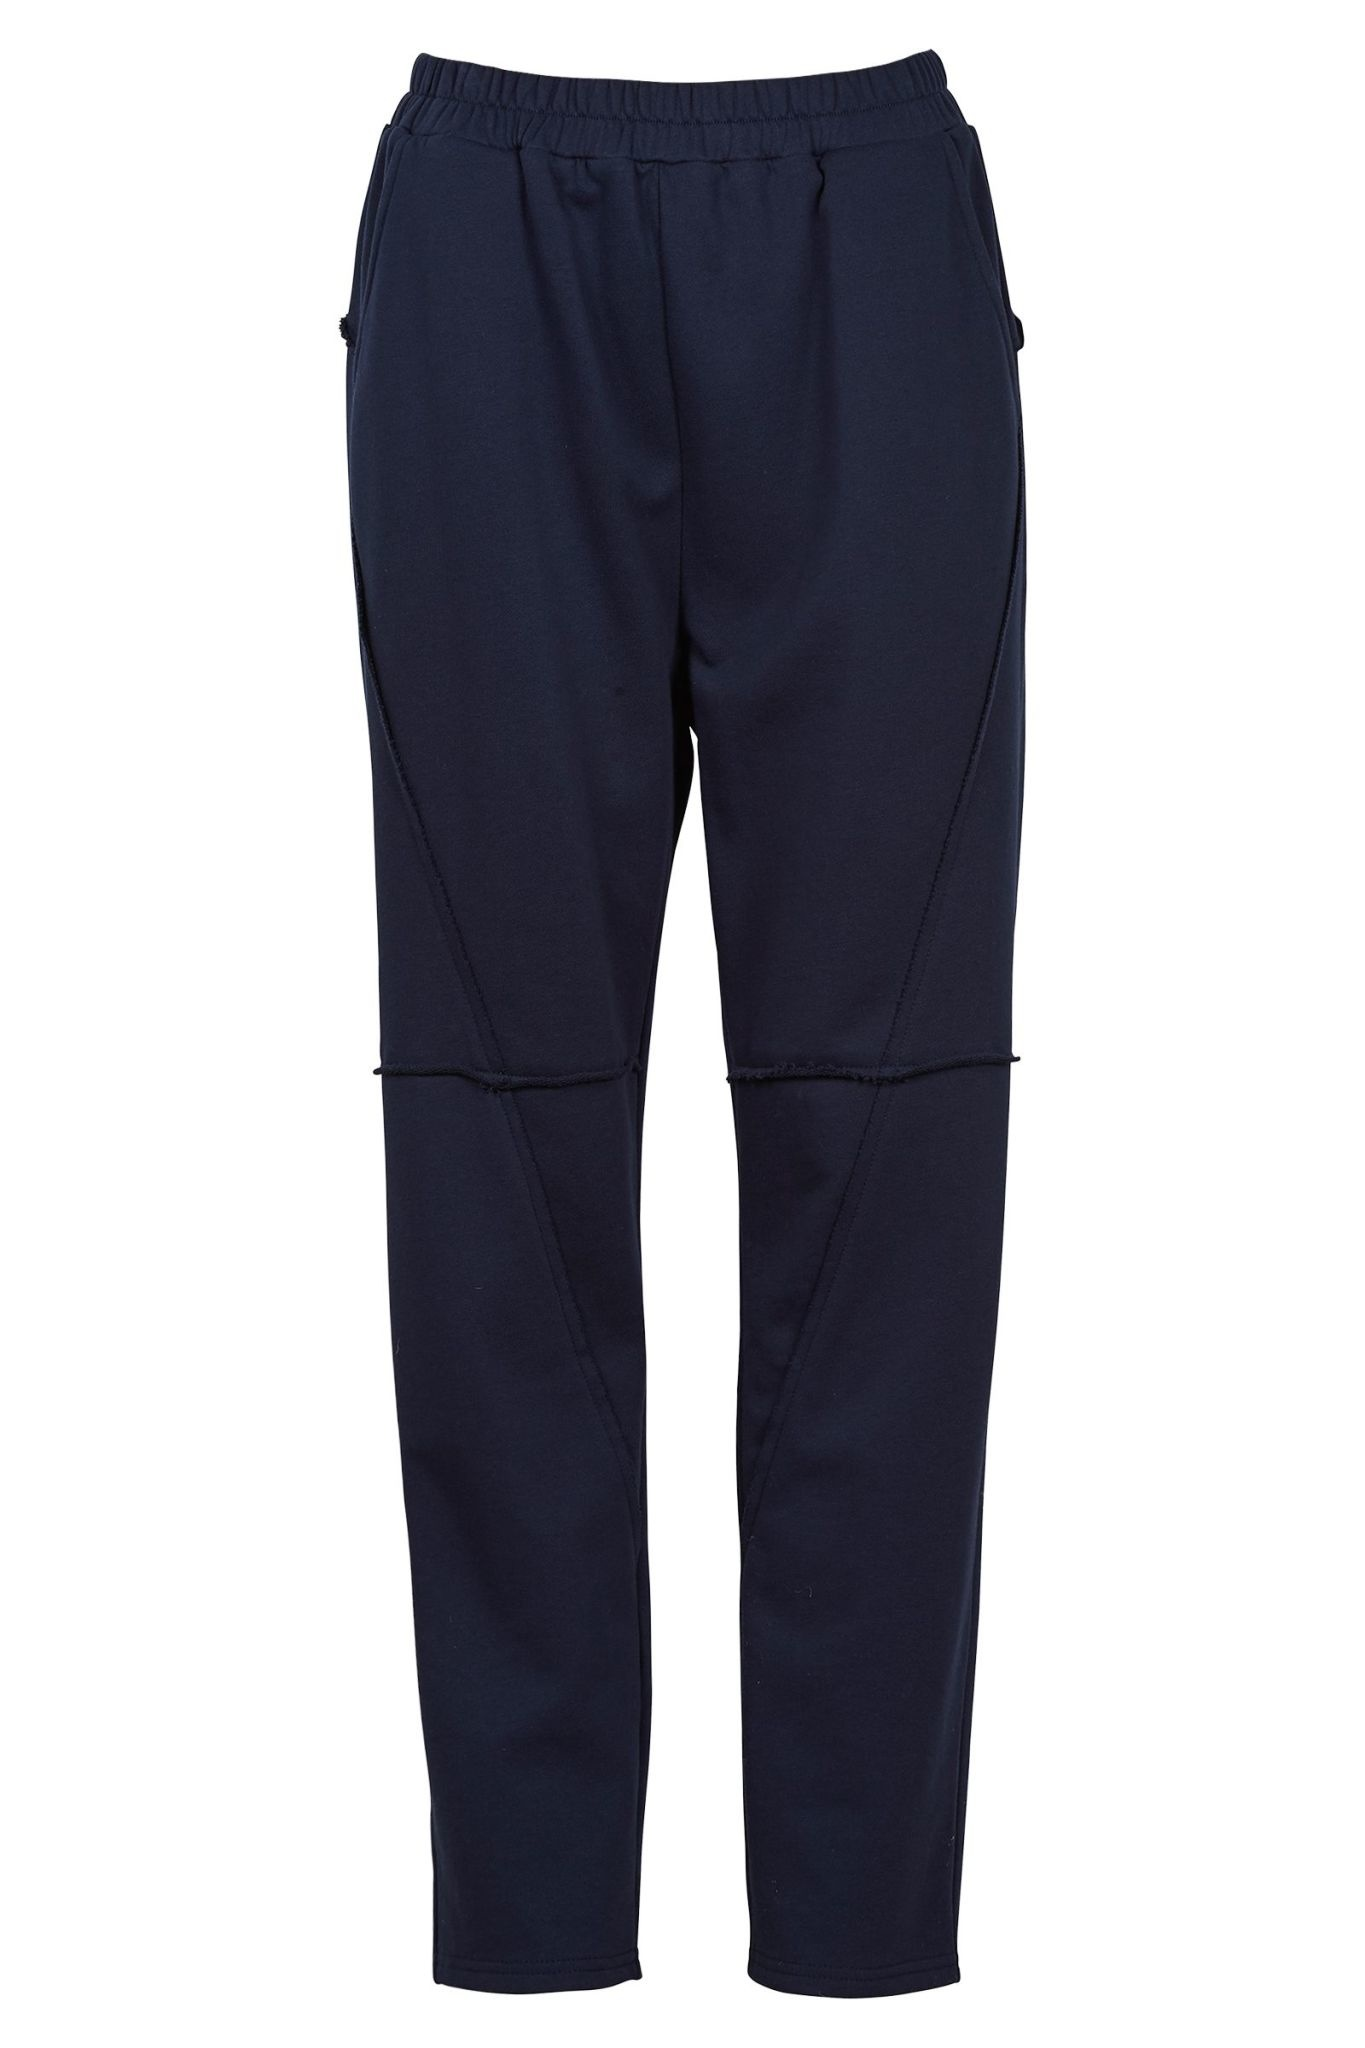 Eb & Ive Arrival pant